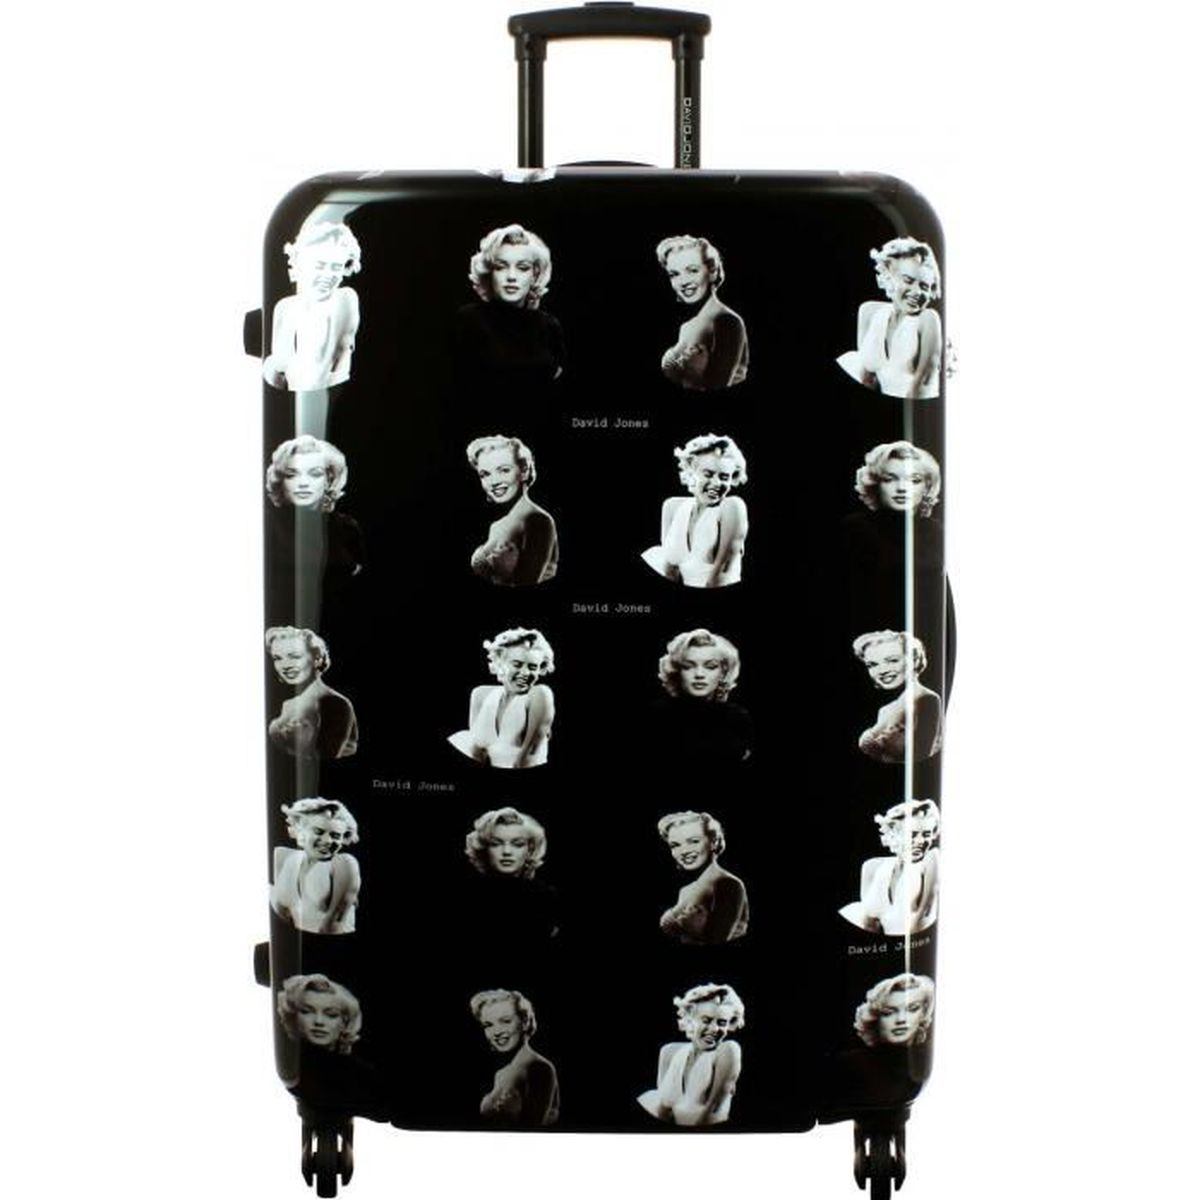 valise rigide david jones 75cm marilyn monroe ba20531g achat vente valise bagage. Black Bedroom Furniture Sets. Home Design Ideas